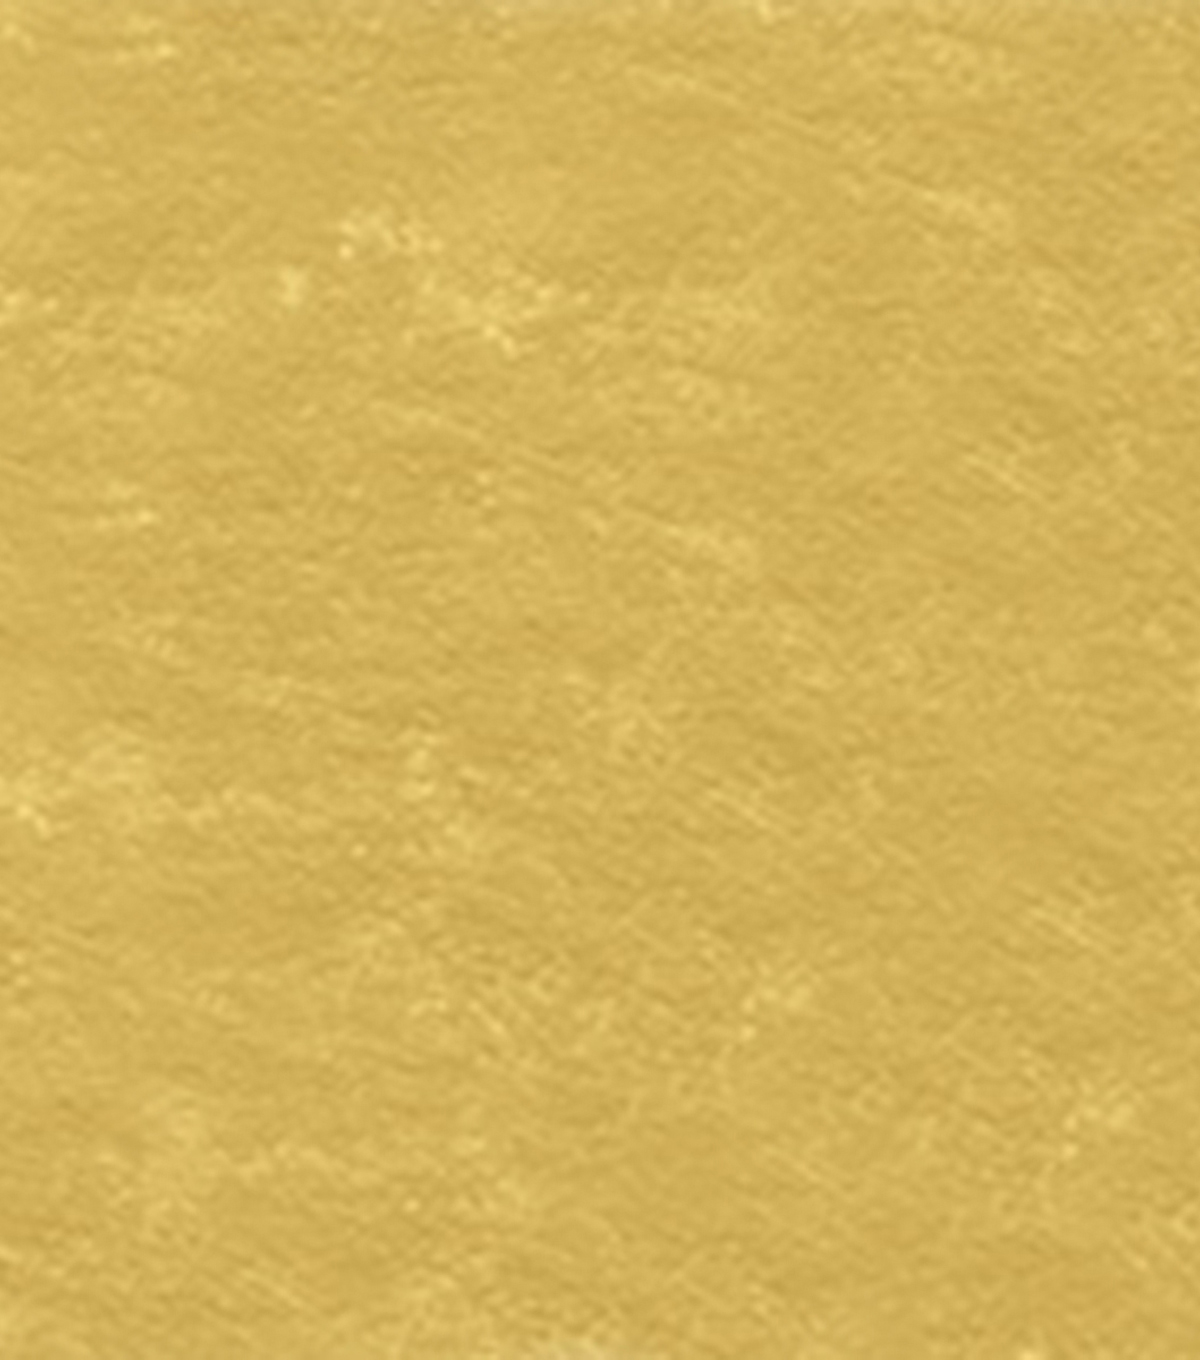 Best Creation Foil Cardstock 12\u0022X12\u0022-Matte Light Gold